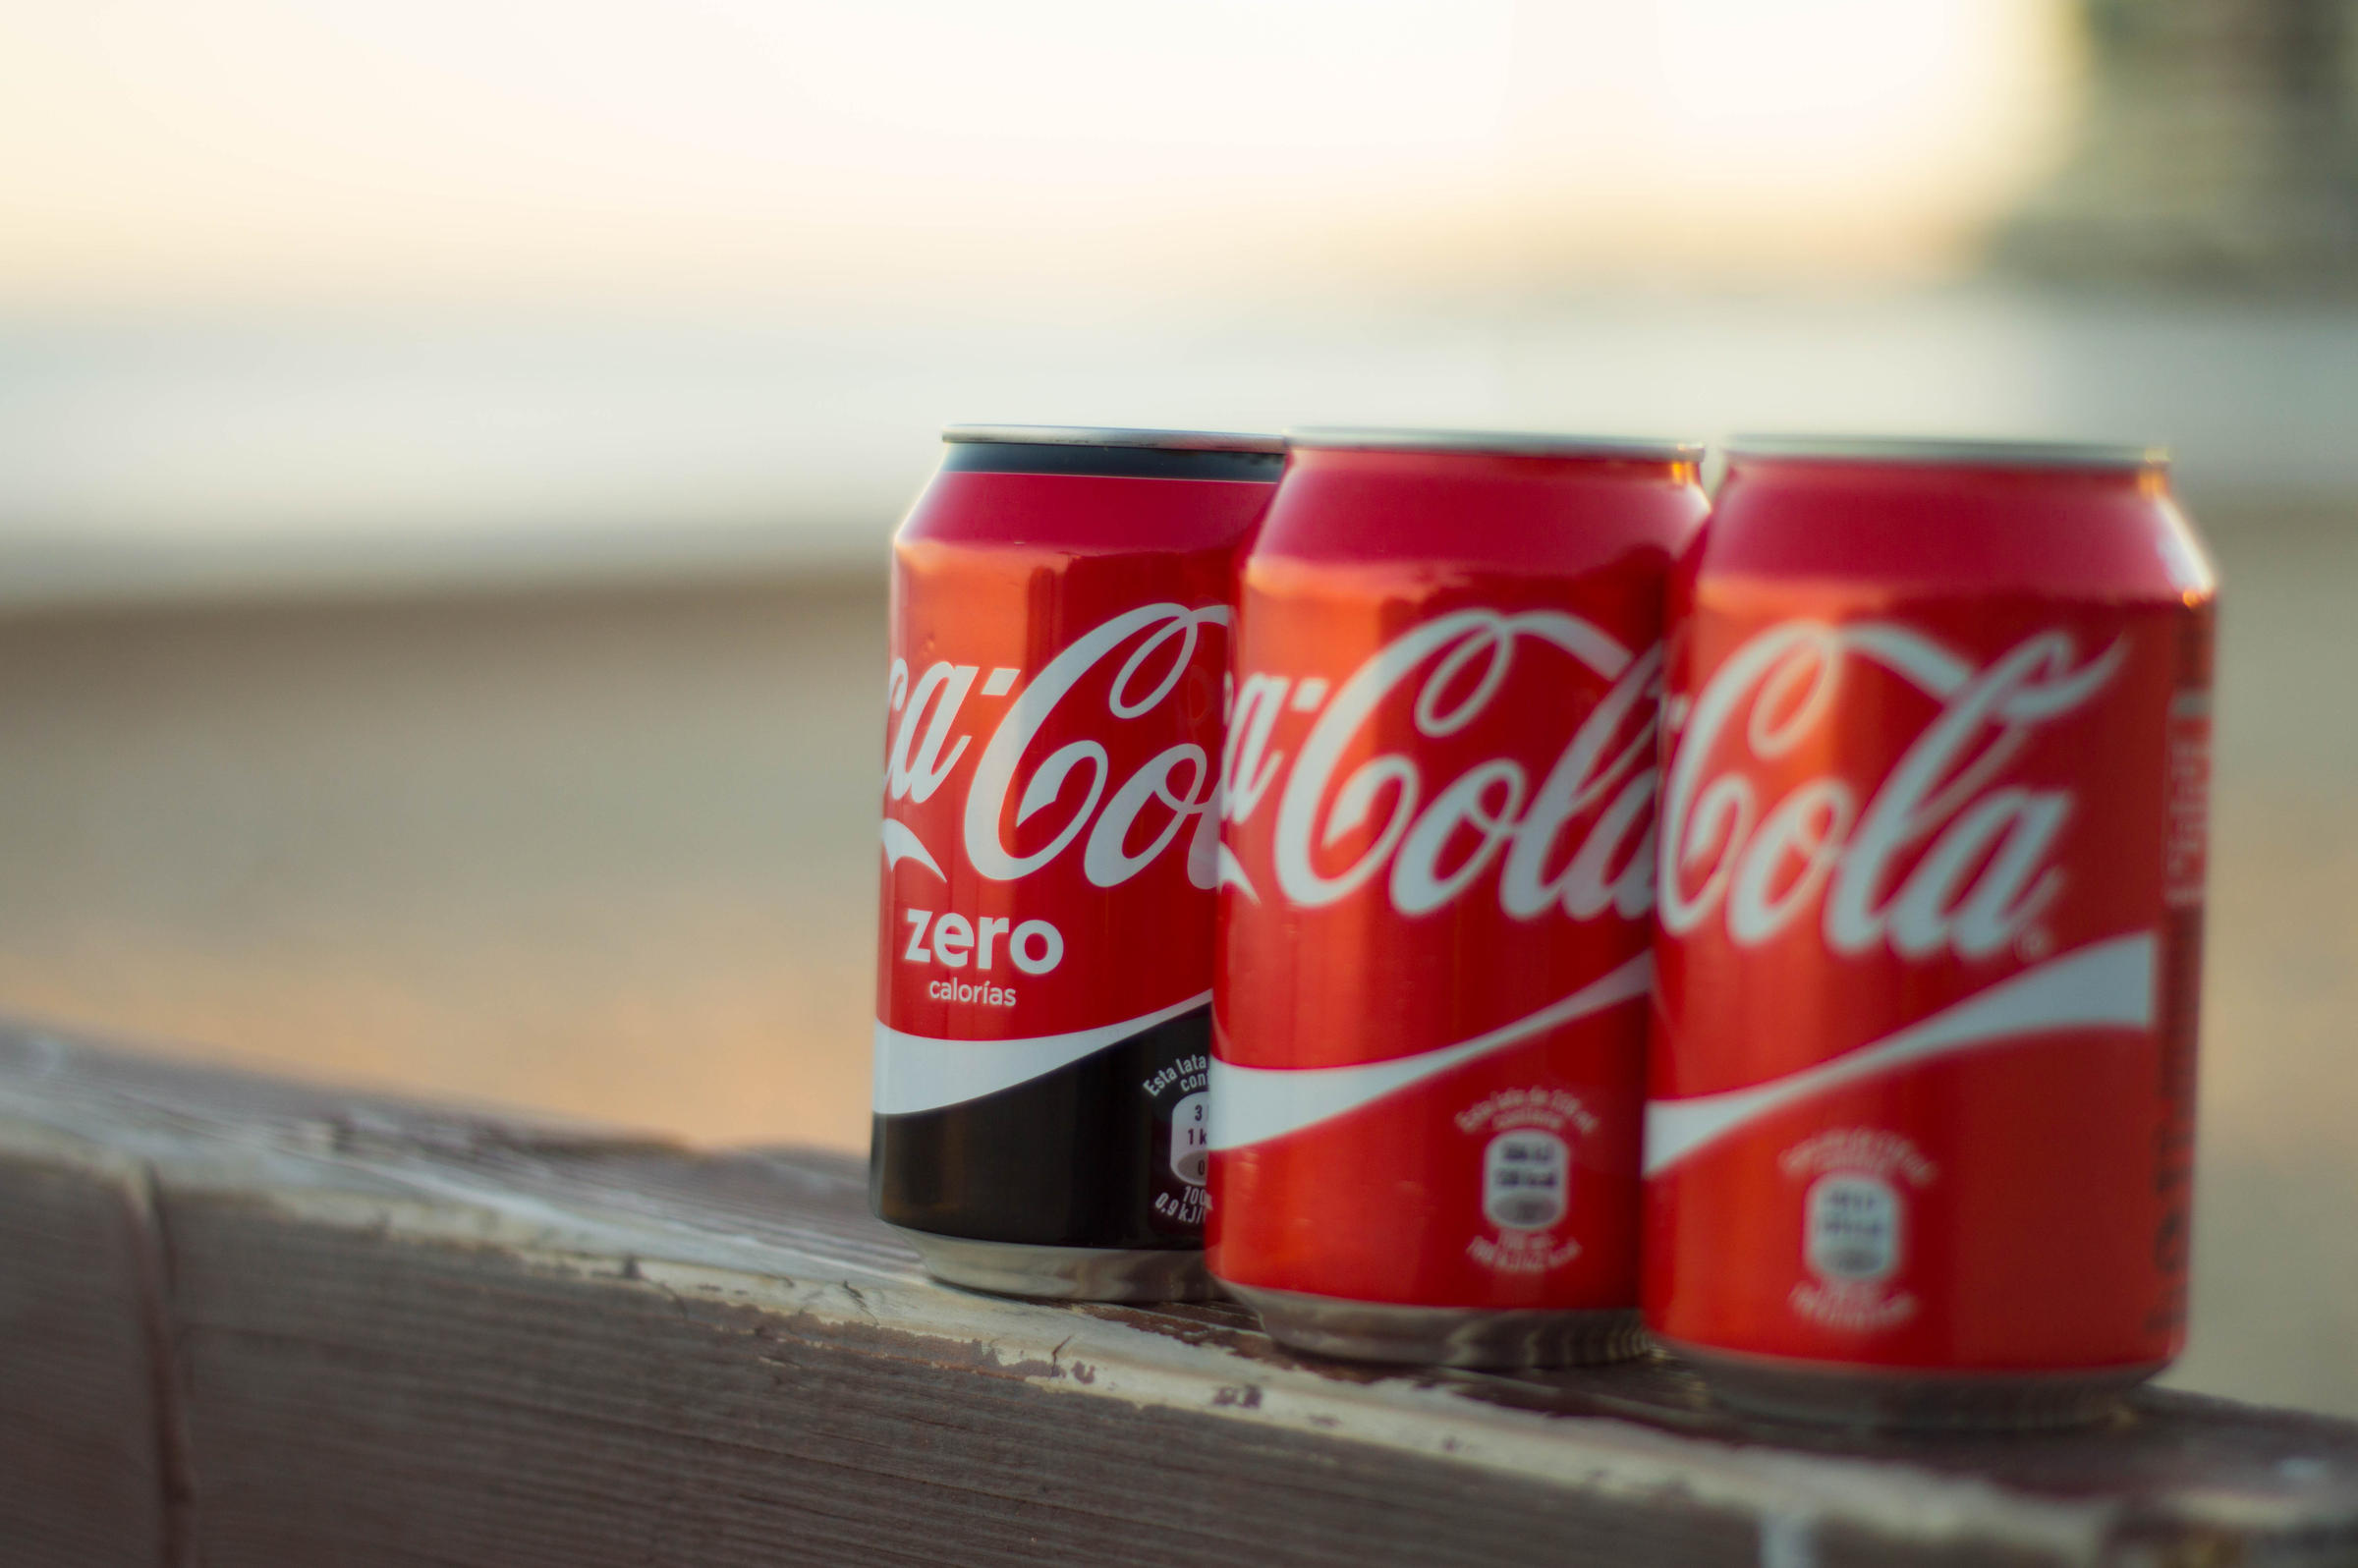 FACT CHECK: Has Coca-Cola Entered Negotiations to Produce Cannabis-Infused Beverages?